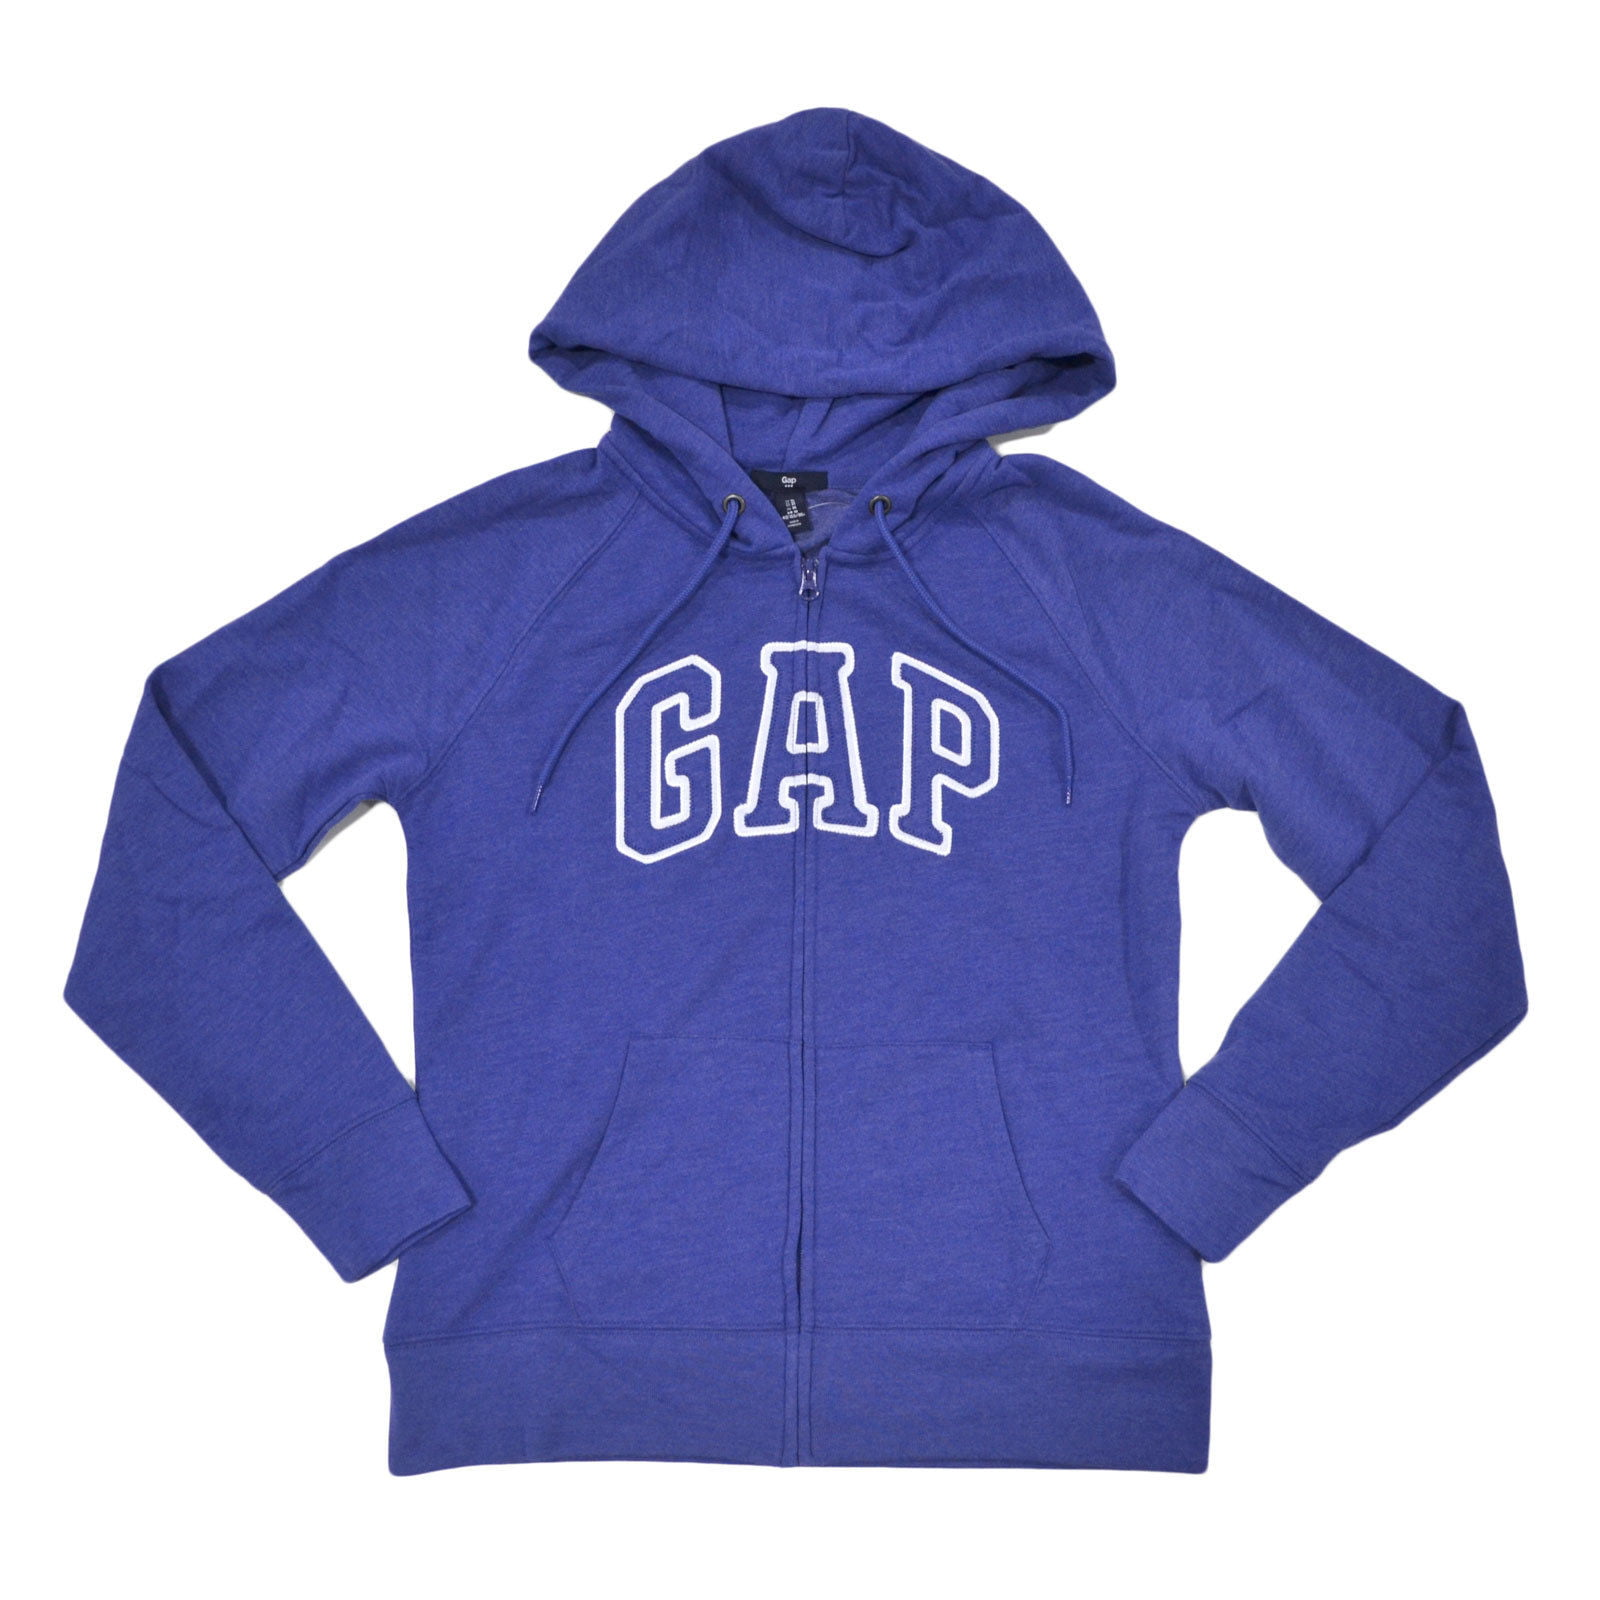 GAP ARCH LOGO Zip Hoodie Sweatshirts Oatmeal Heather  SWEATER JACKET MEN  NEW